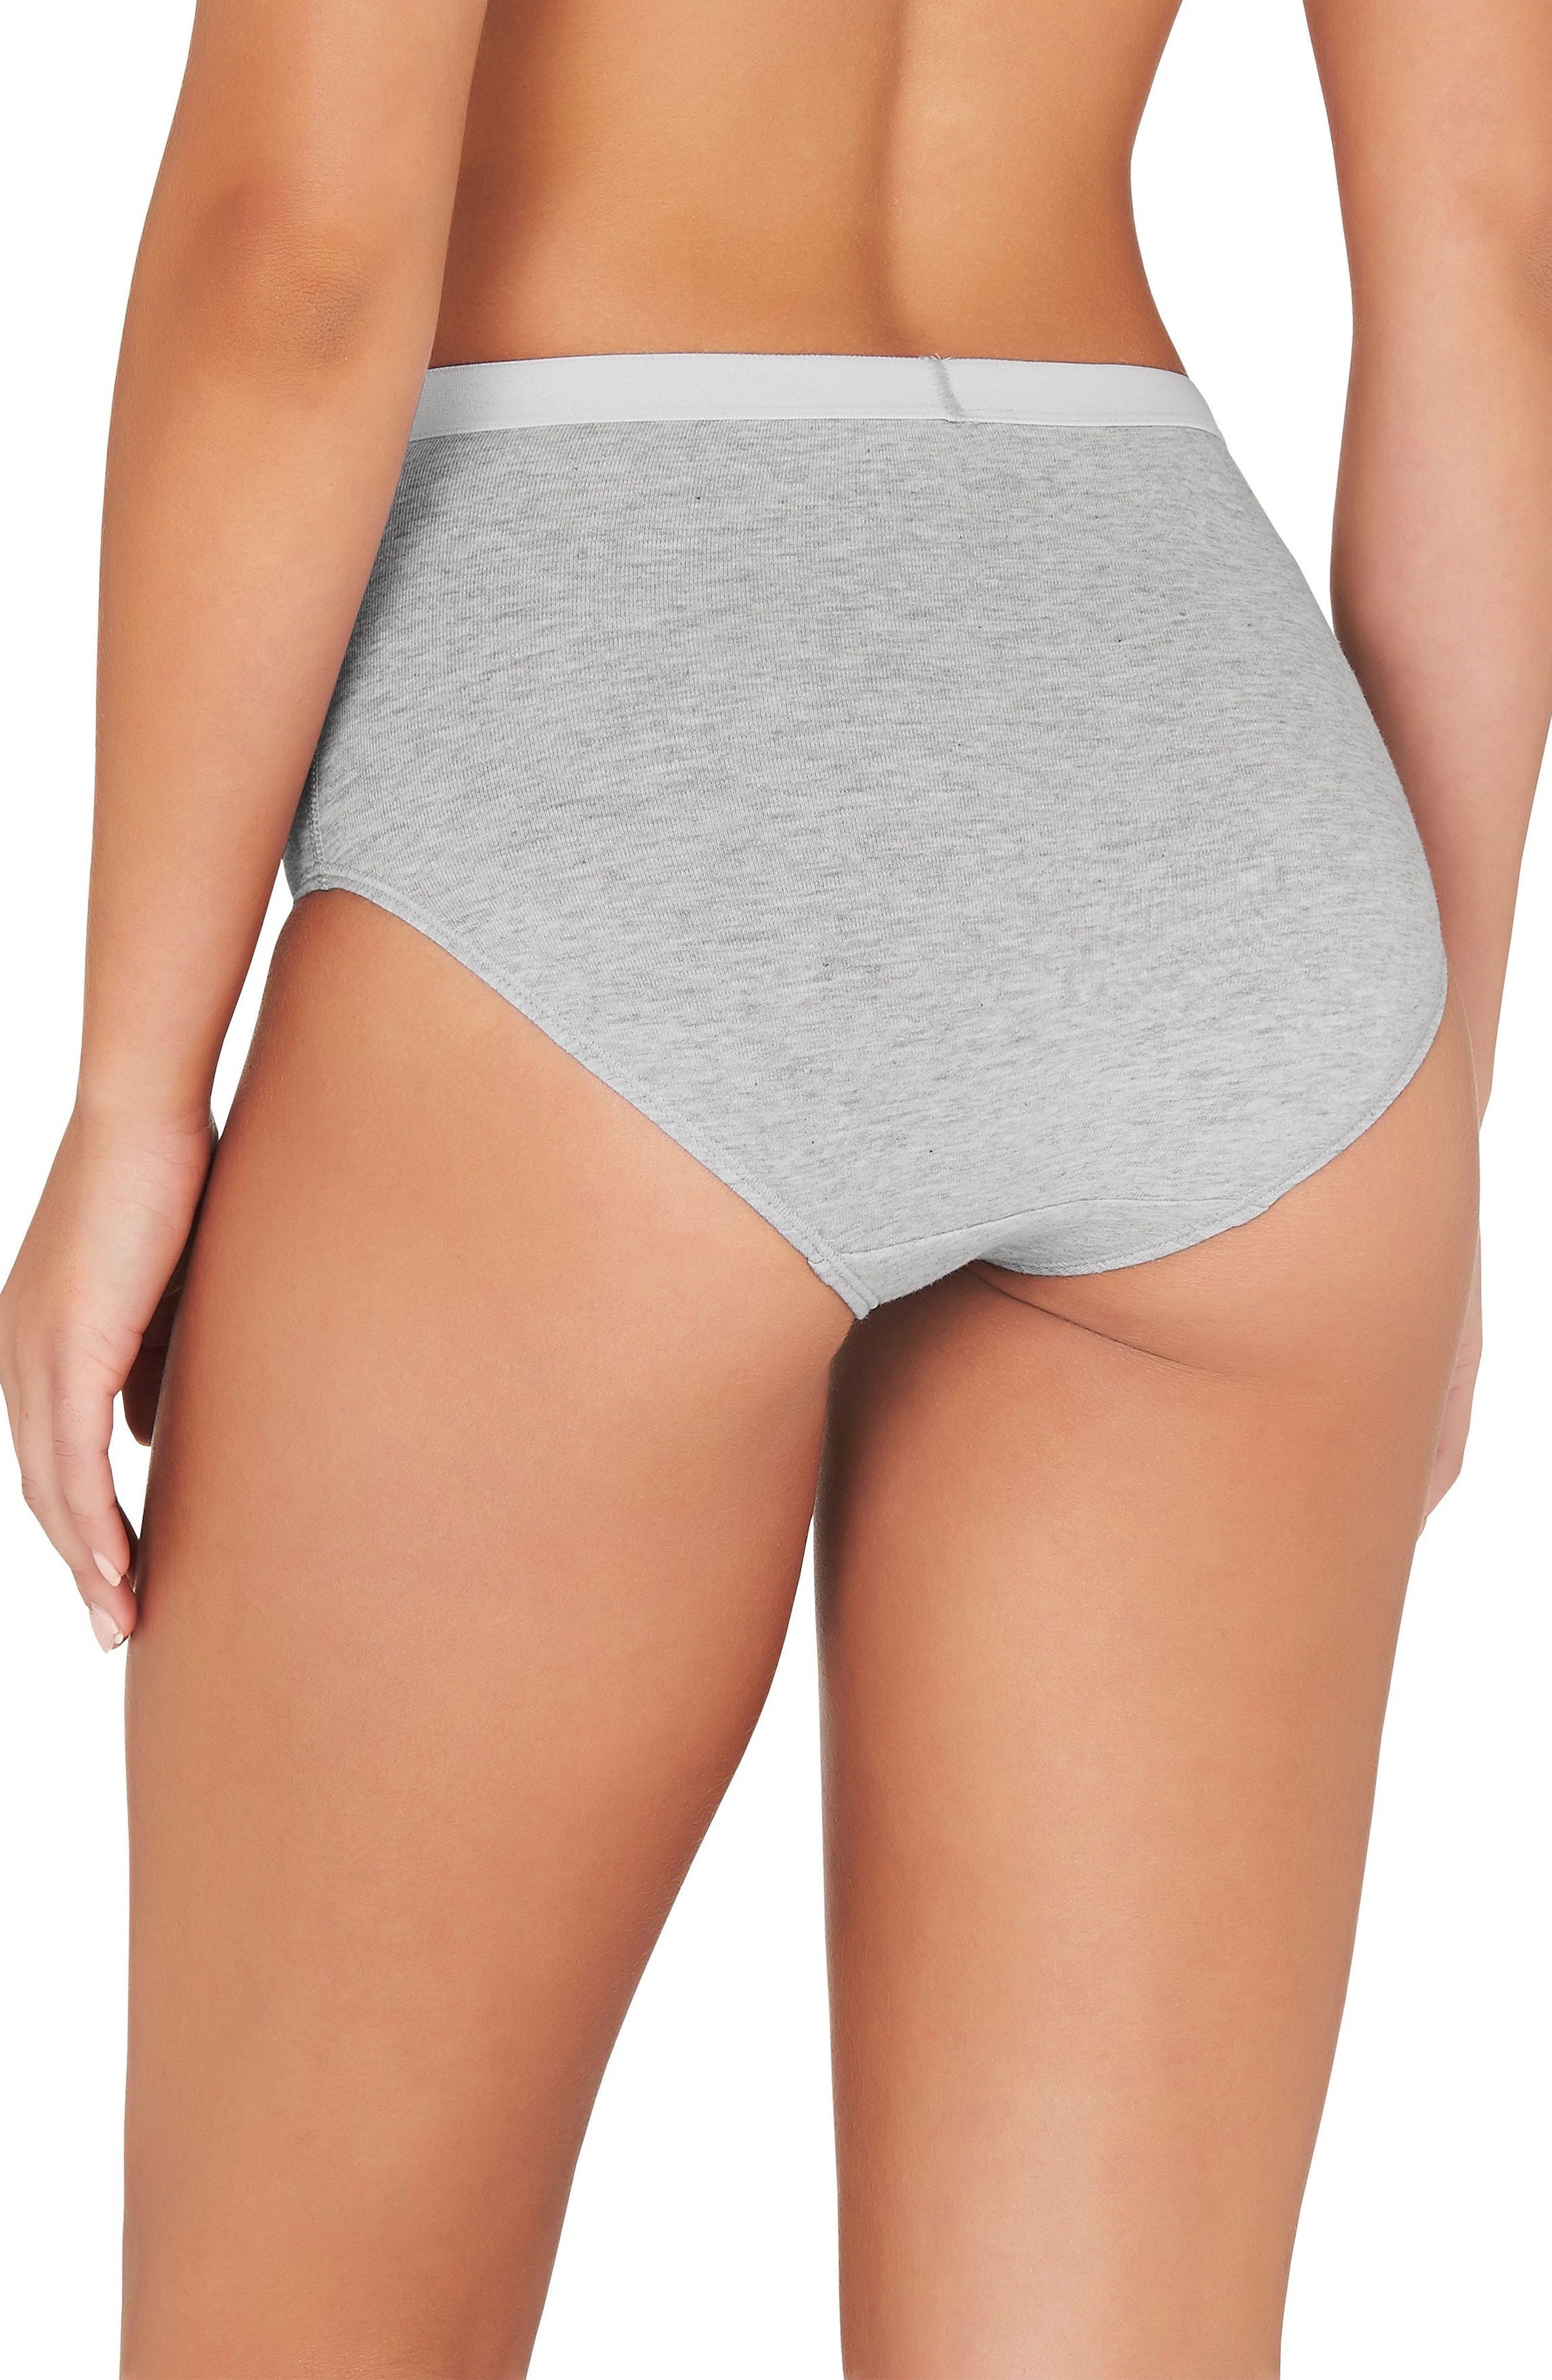 3-Pack Stretch Organic Cotton High Waist Briefs,                             Alternate thumbnail 3, color,                             Grey Marle